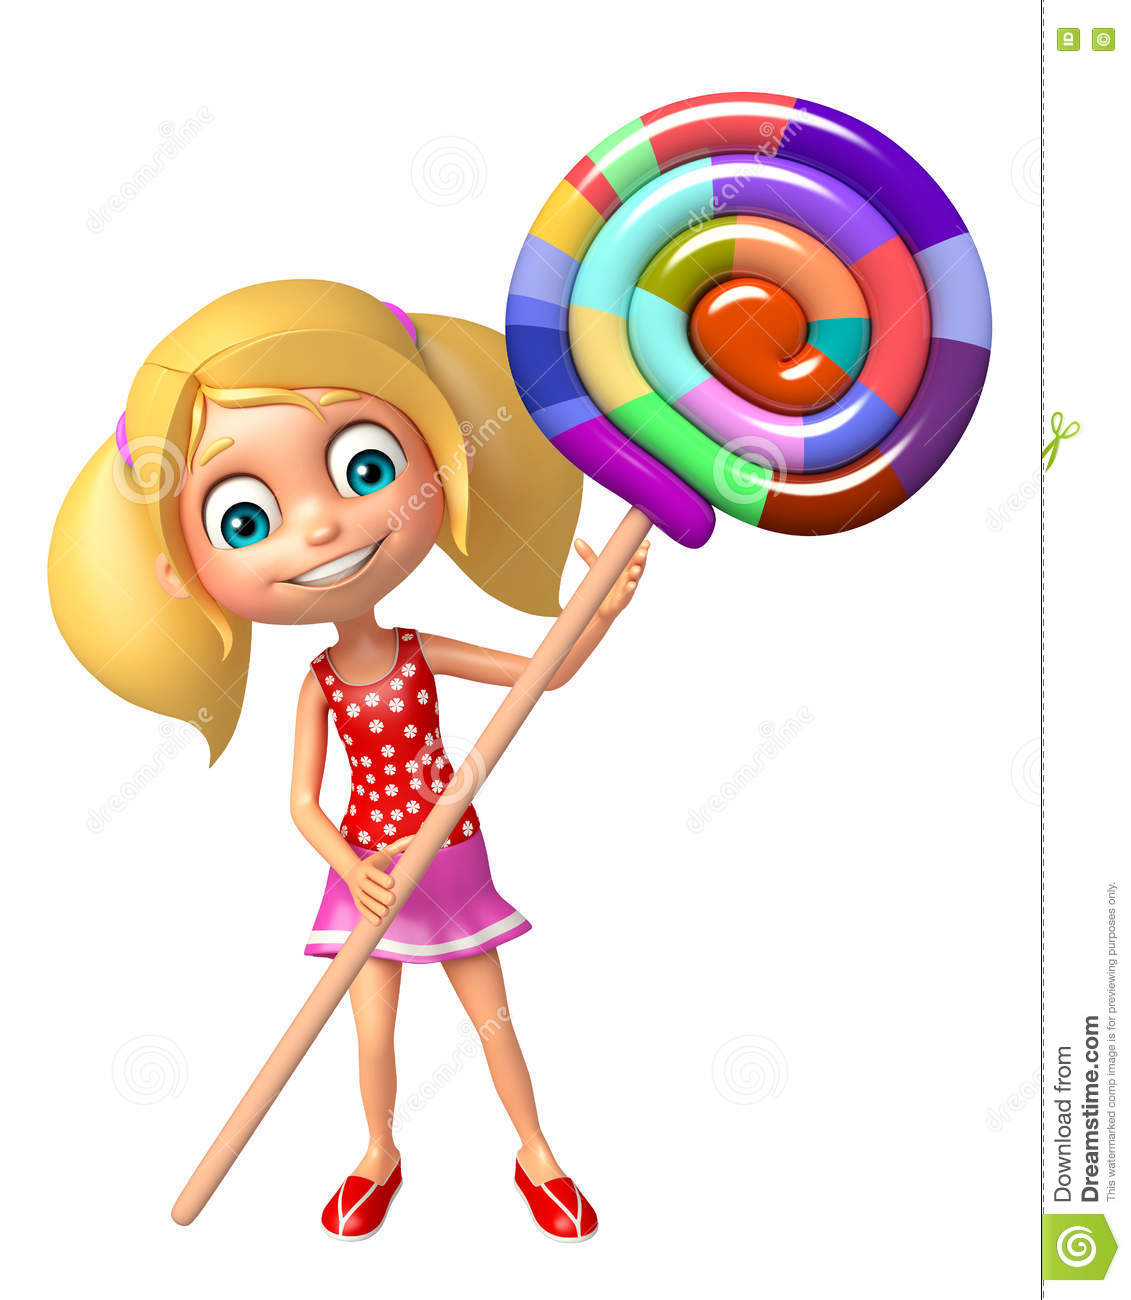 hight resolution of 3d rendered illustration of kid girl with lollipop